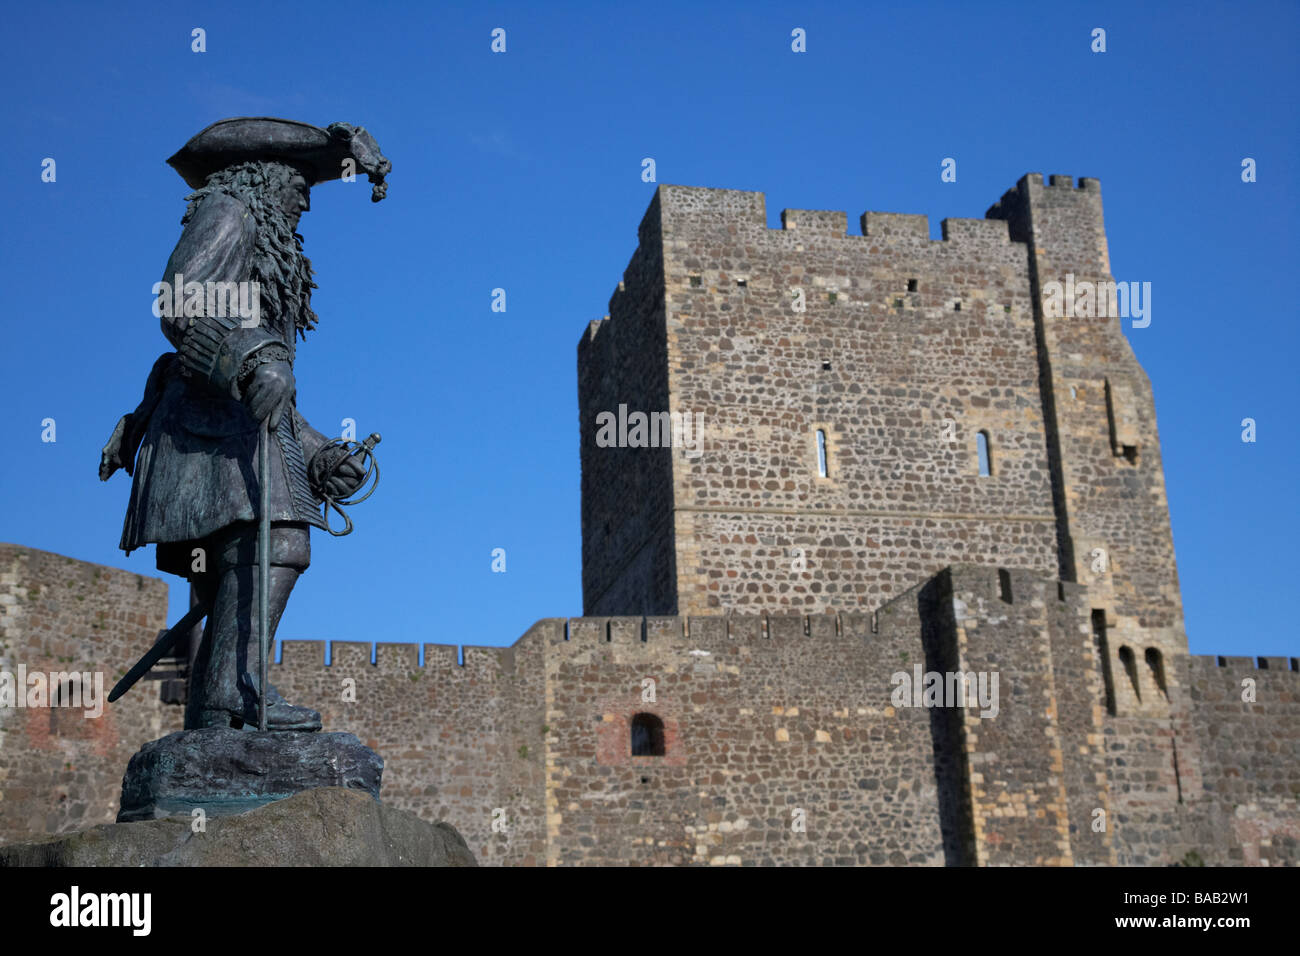 King William of Orange statue at Carrickfergus castle commemorates the landing in Ireland by King William III at - Stock Image